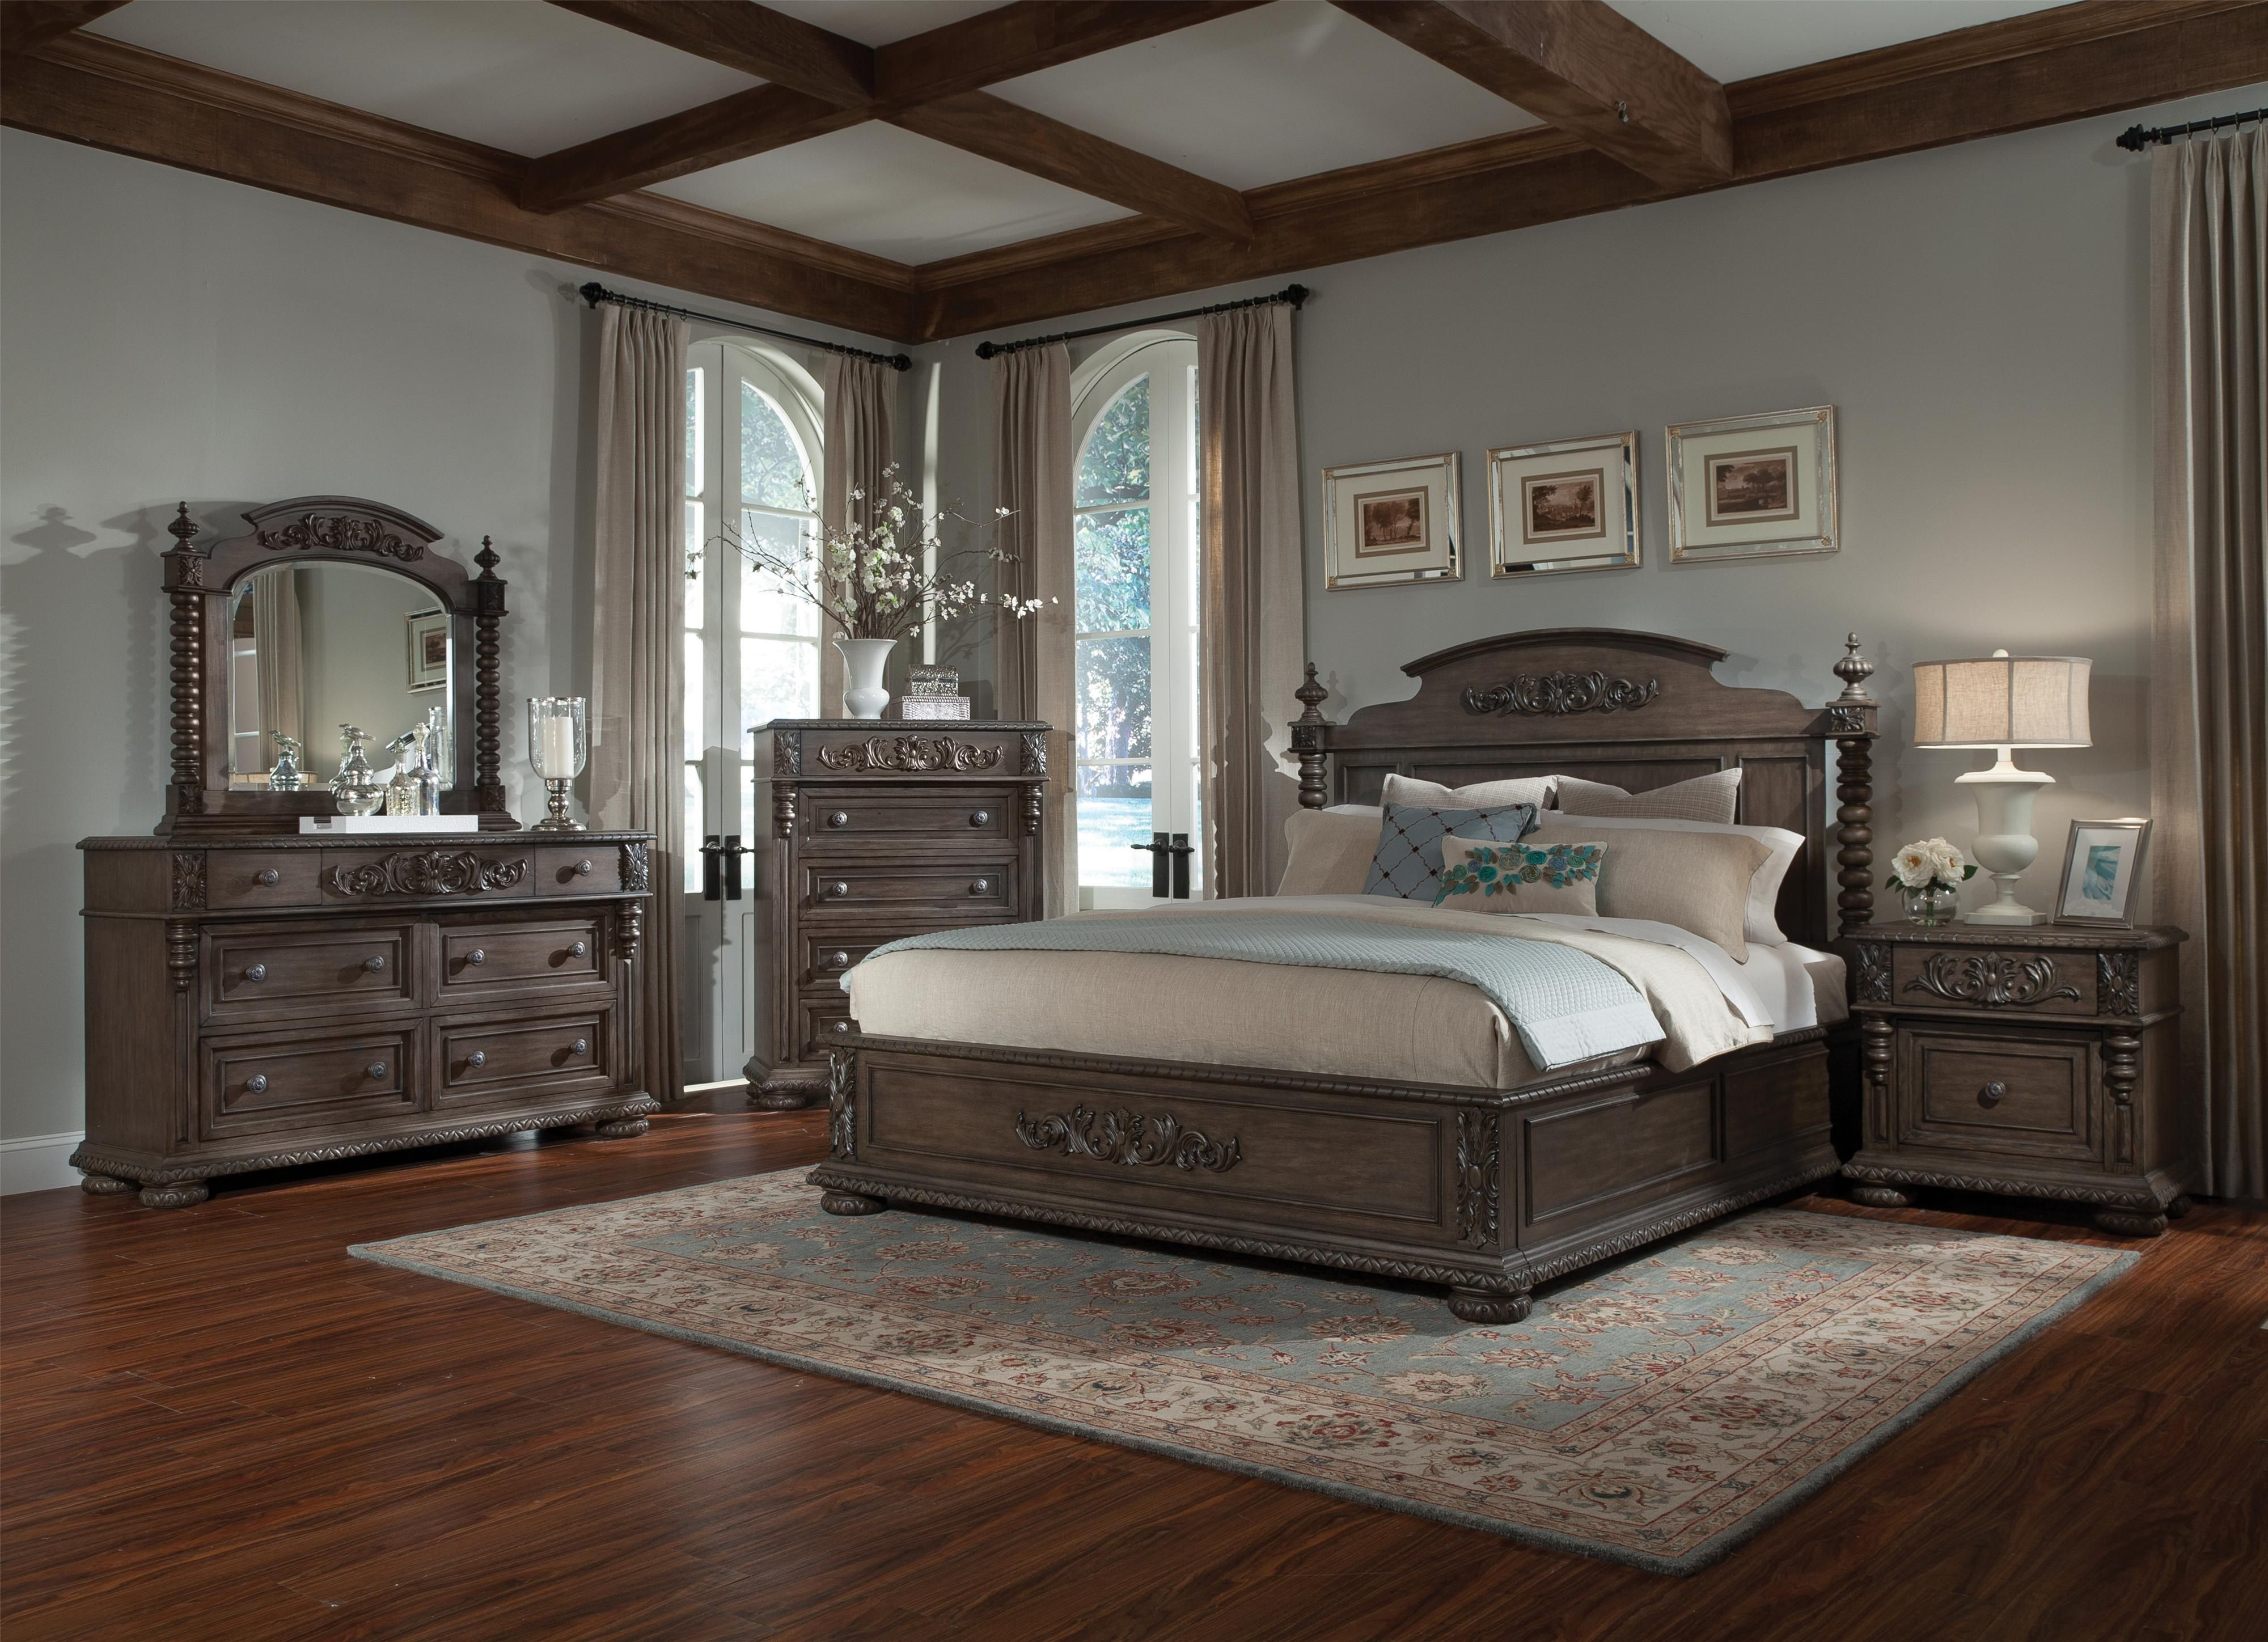 Versailles King Bed With Bun Feet And Carved Details By